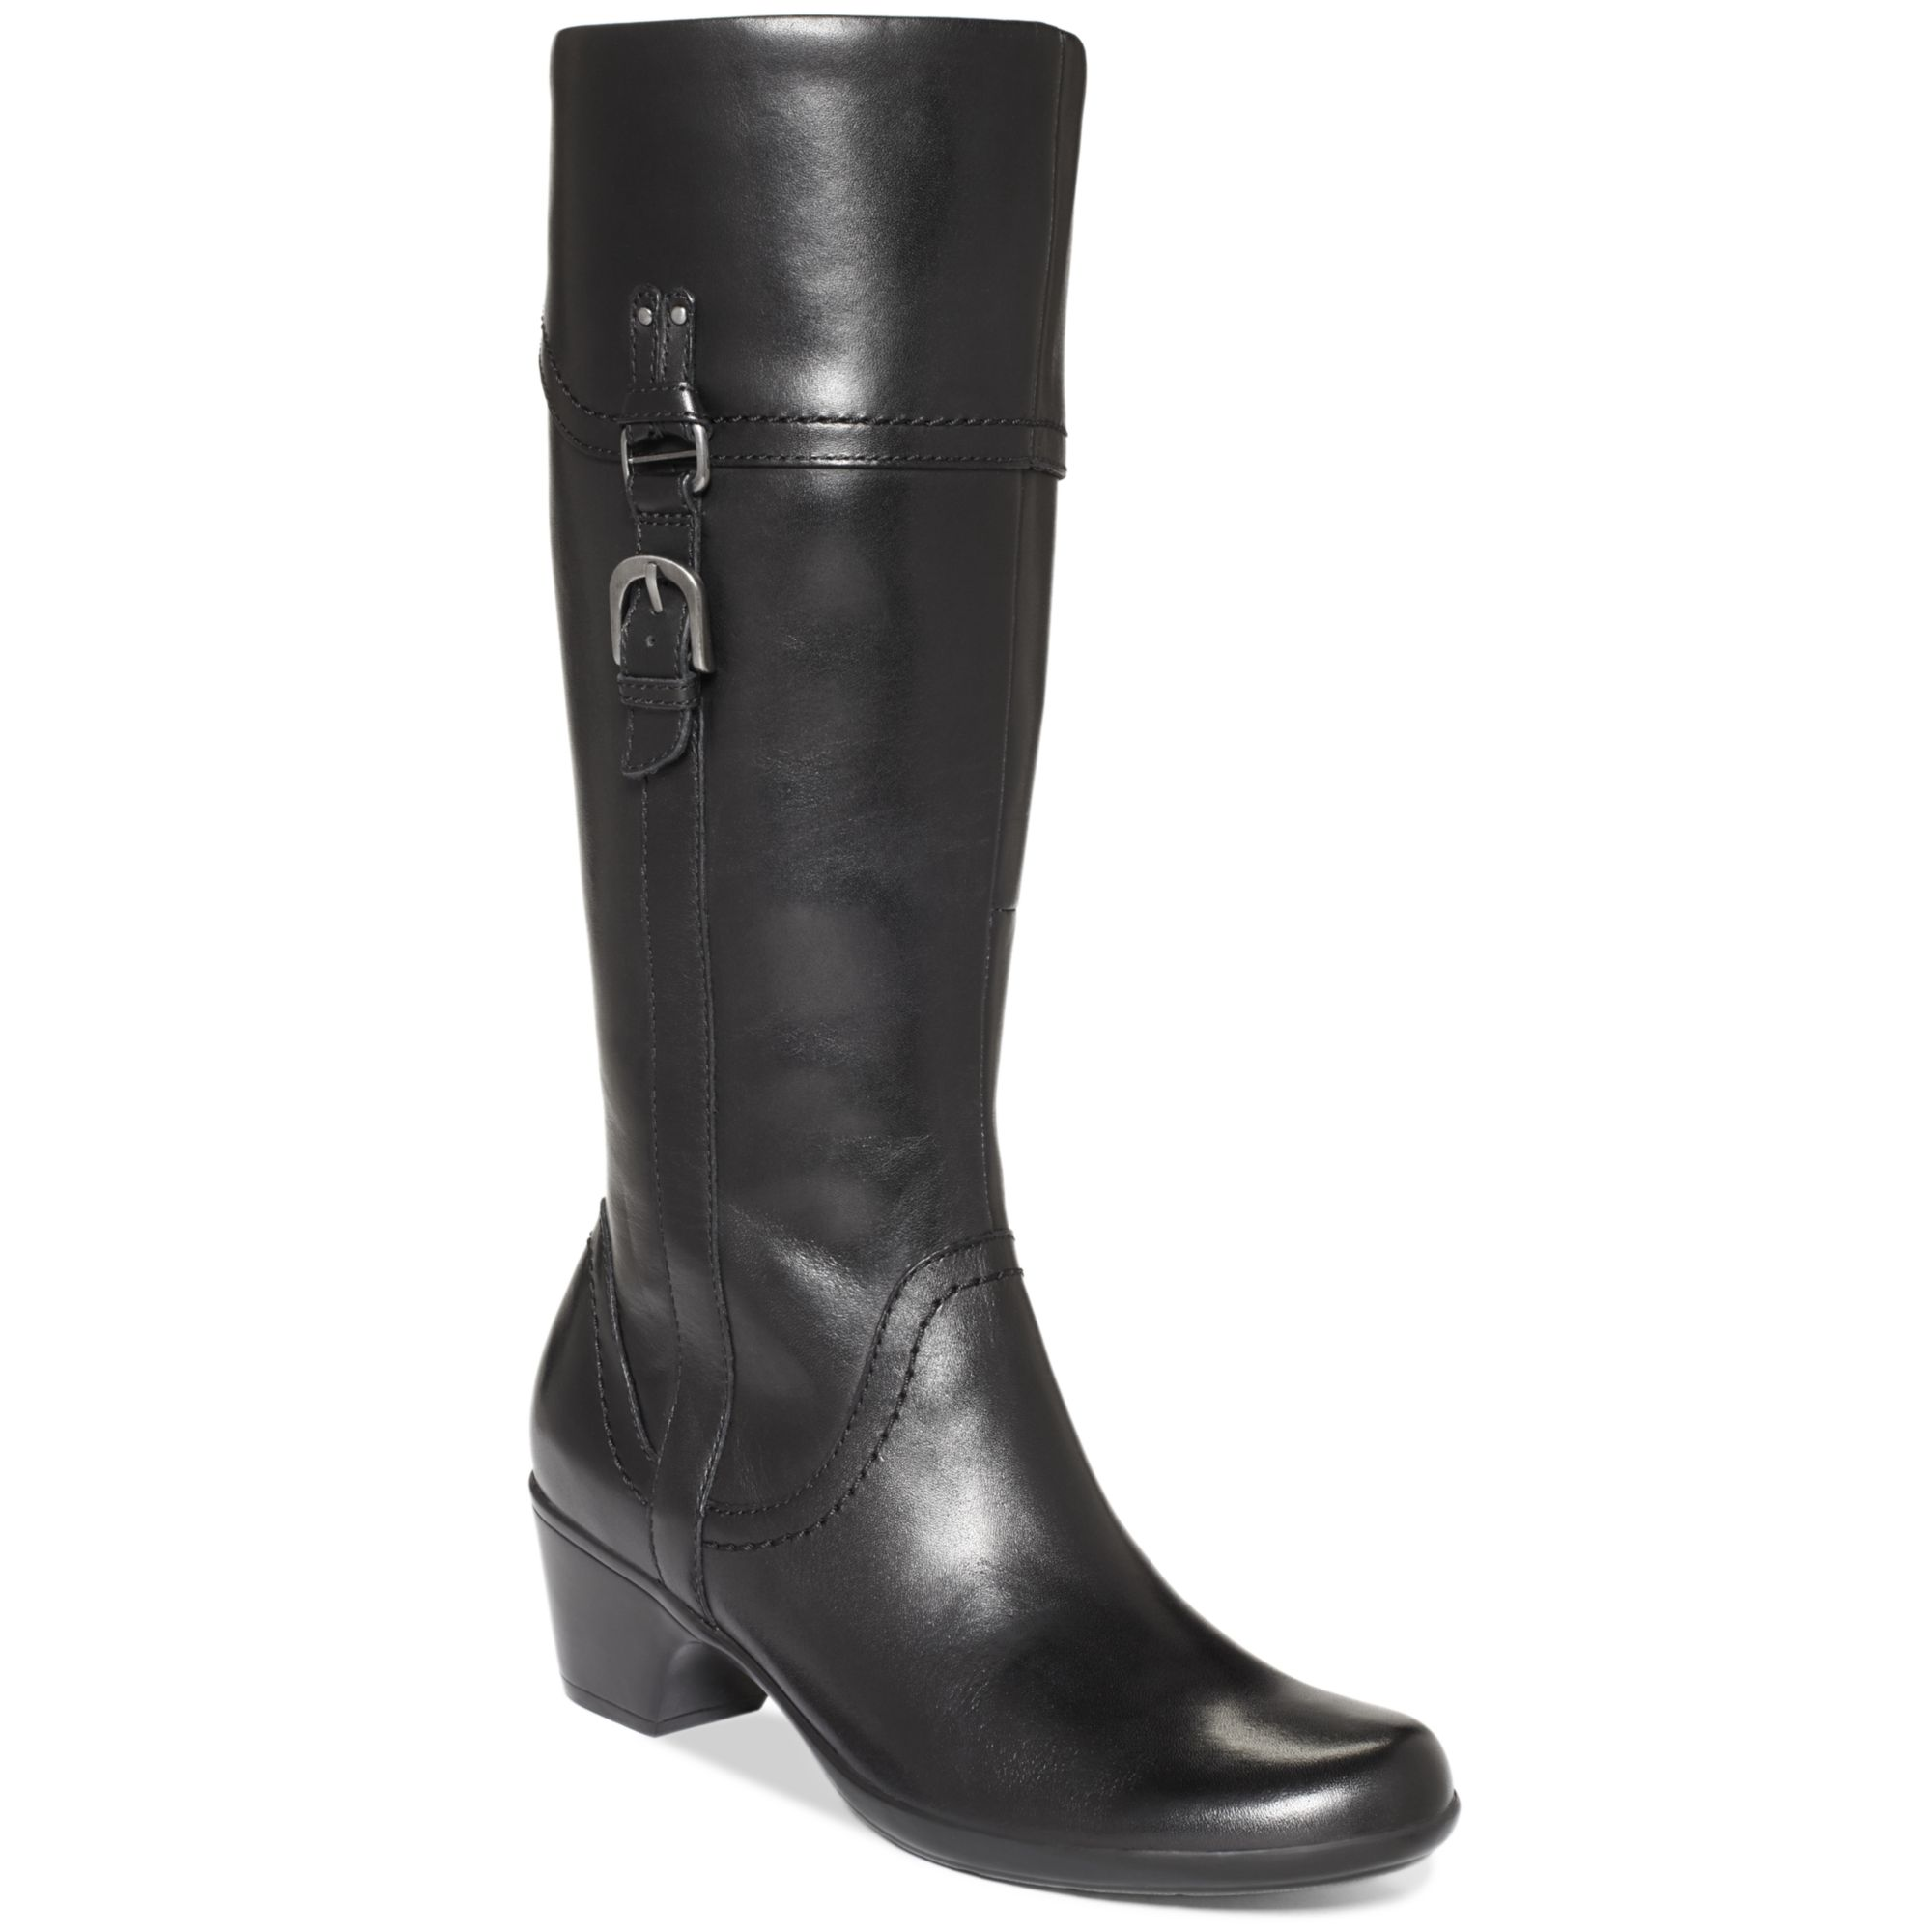 2babb27e7bef Lyst - Clarks Ingalls Vicky Ii Wide Calf Boots in Black